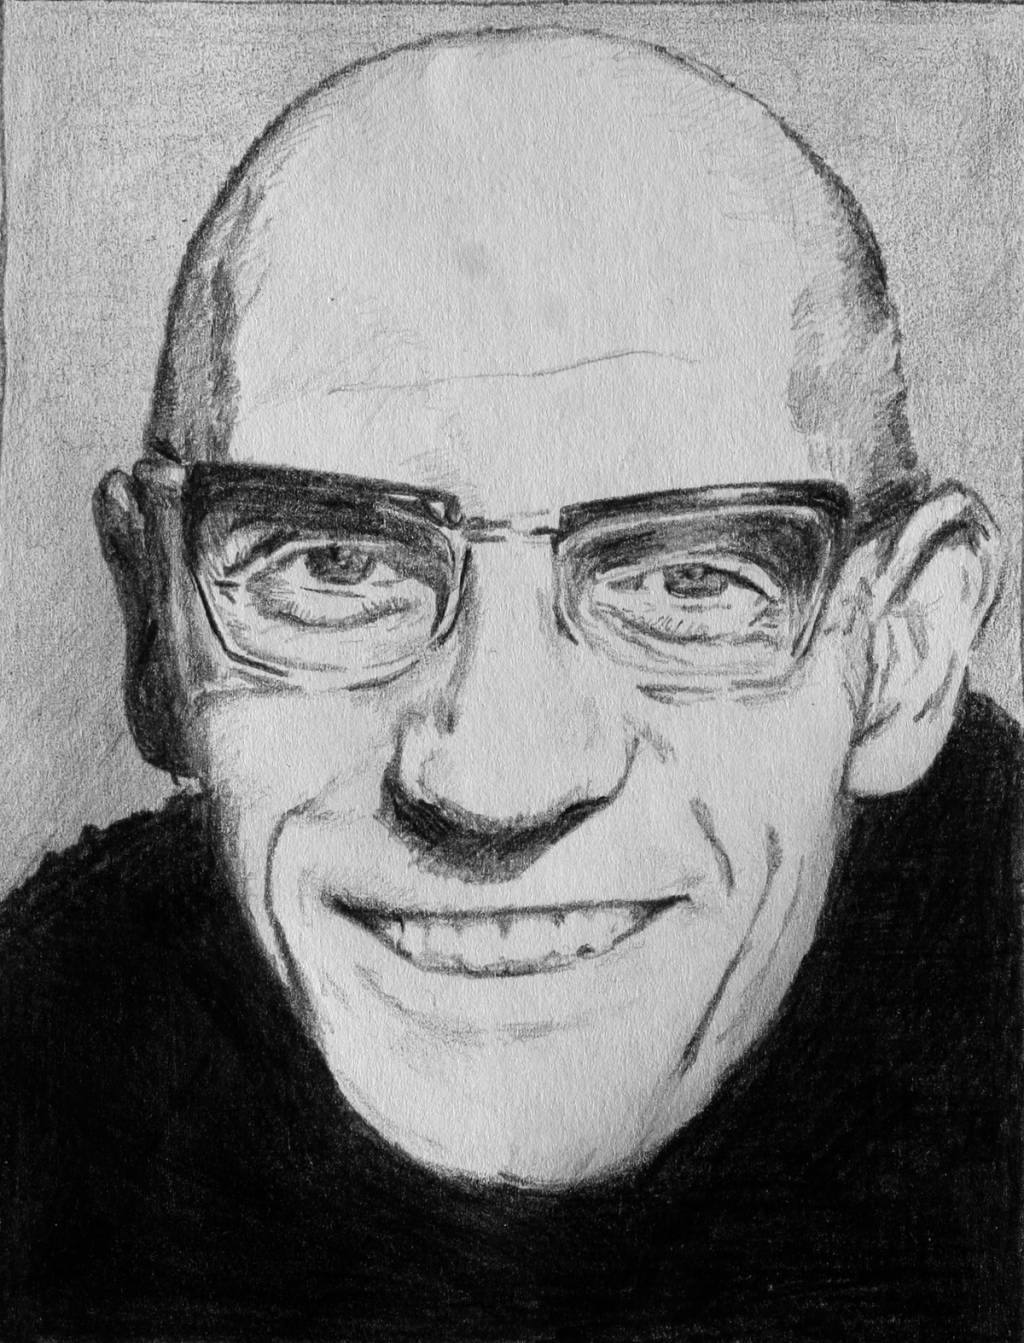 michel foucault power essay paralegal resume objective examples the discourse of power michael foucault history of sexuality retrato del filosofo s michel foucault discourse